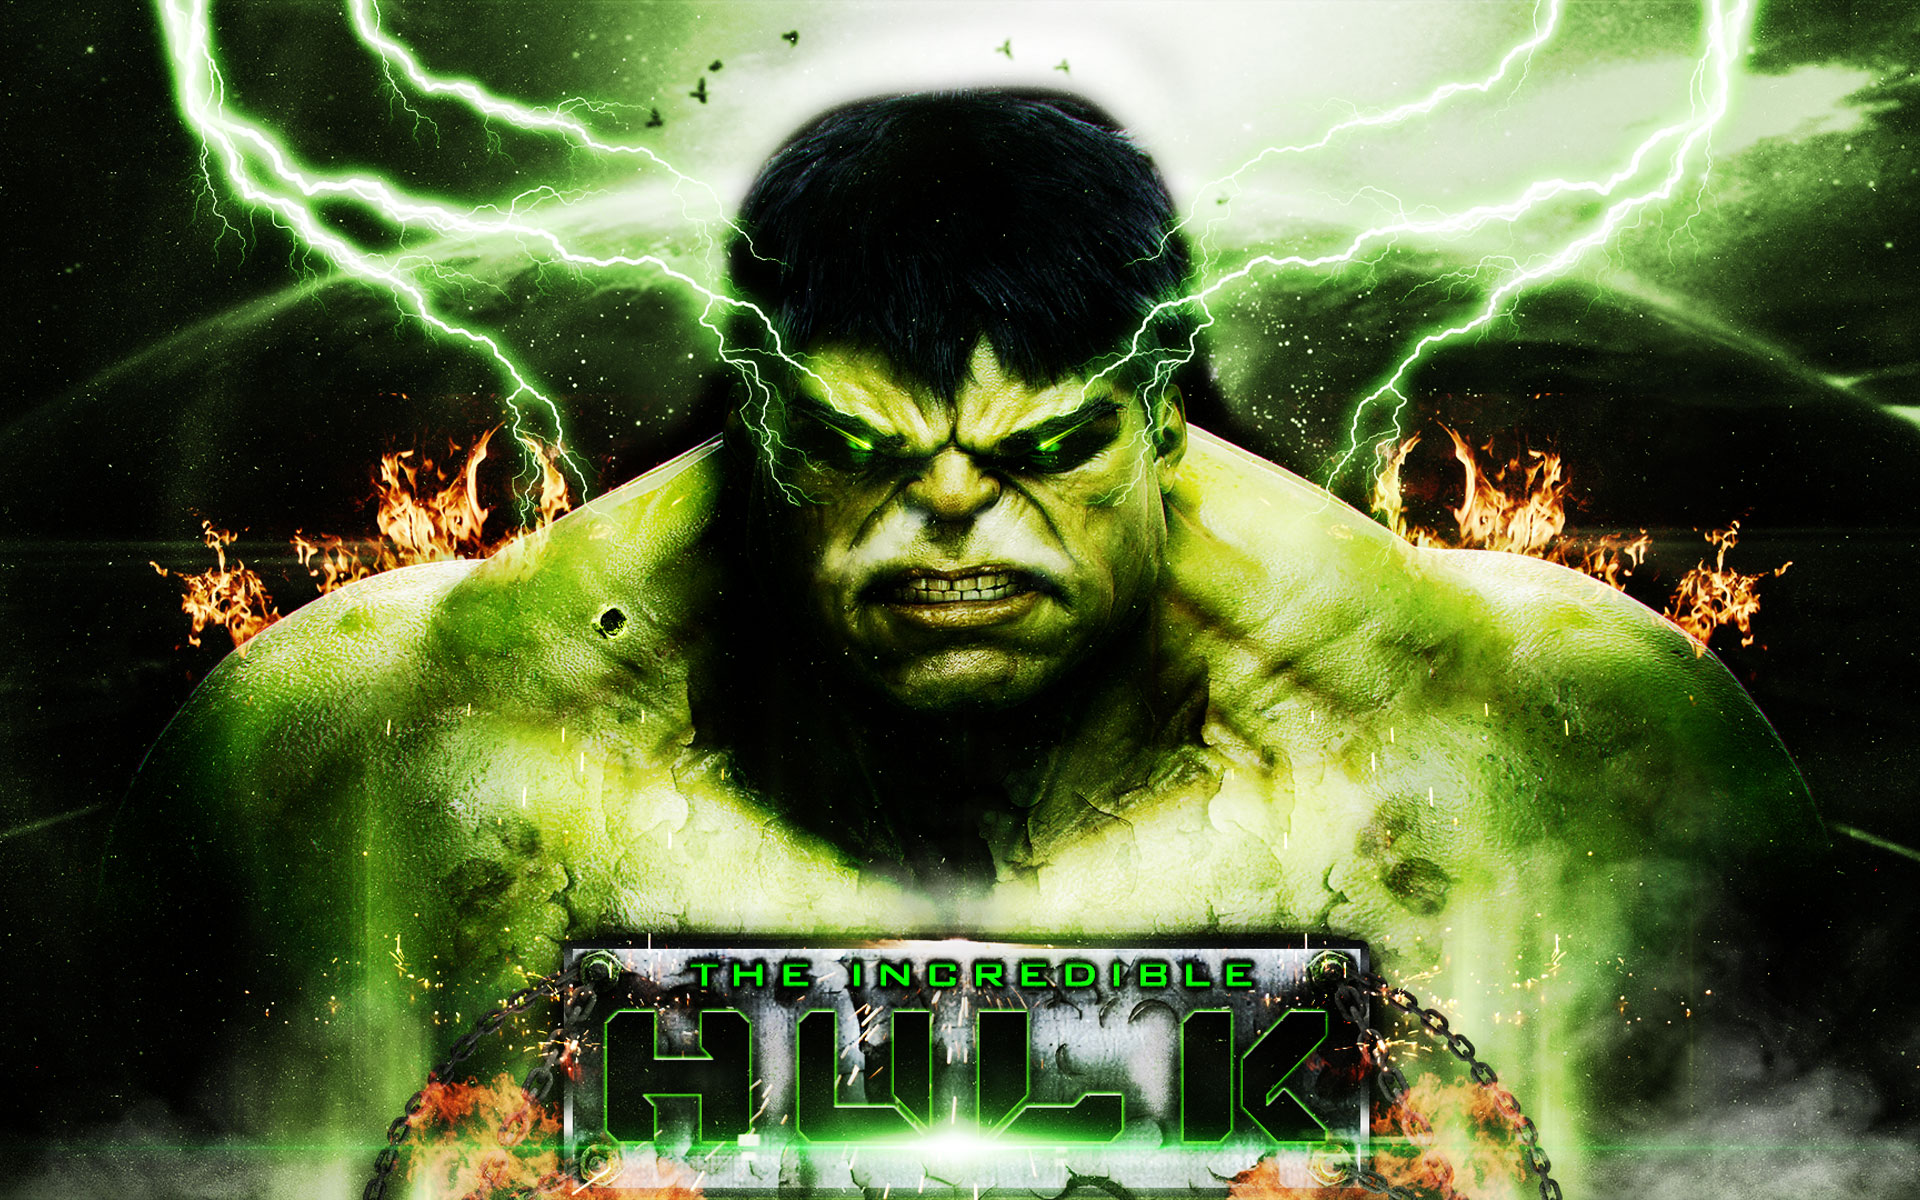 Hulk wallpapers high quality download free - Hulk hd images free download ...